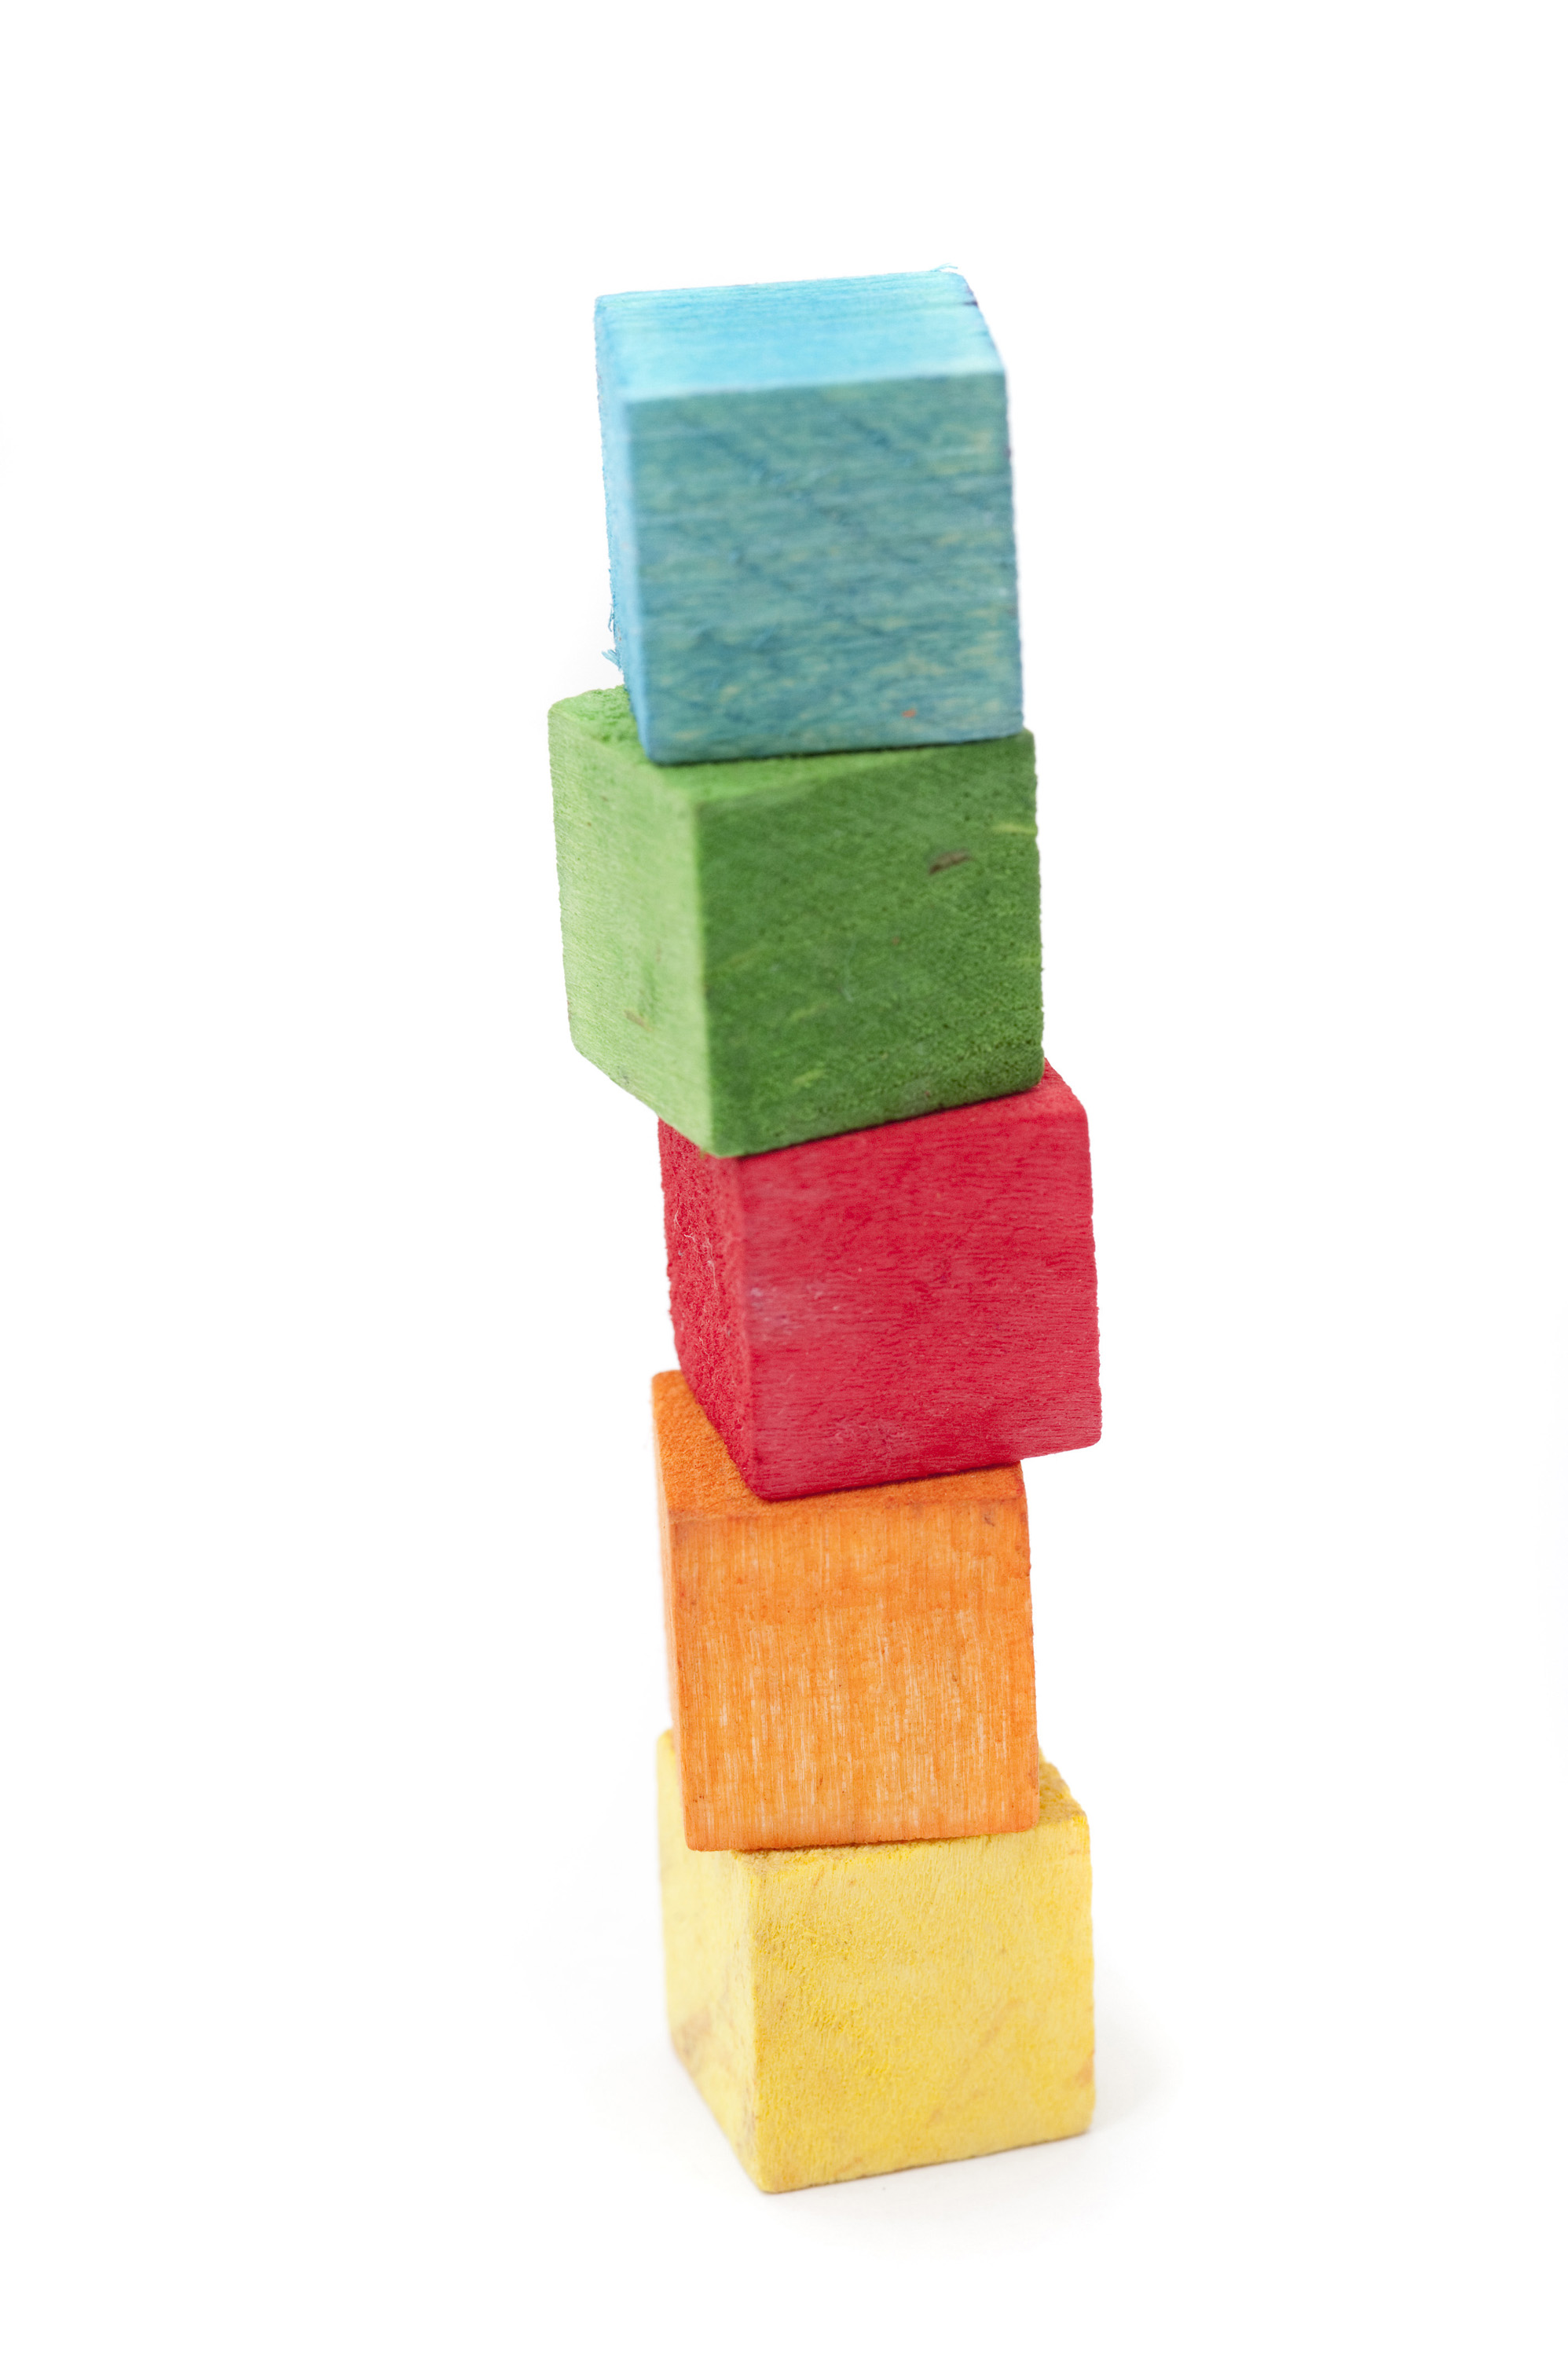 block clipart towers